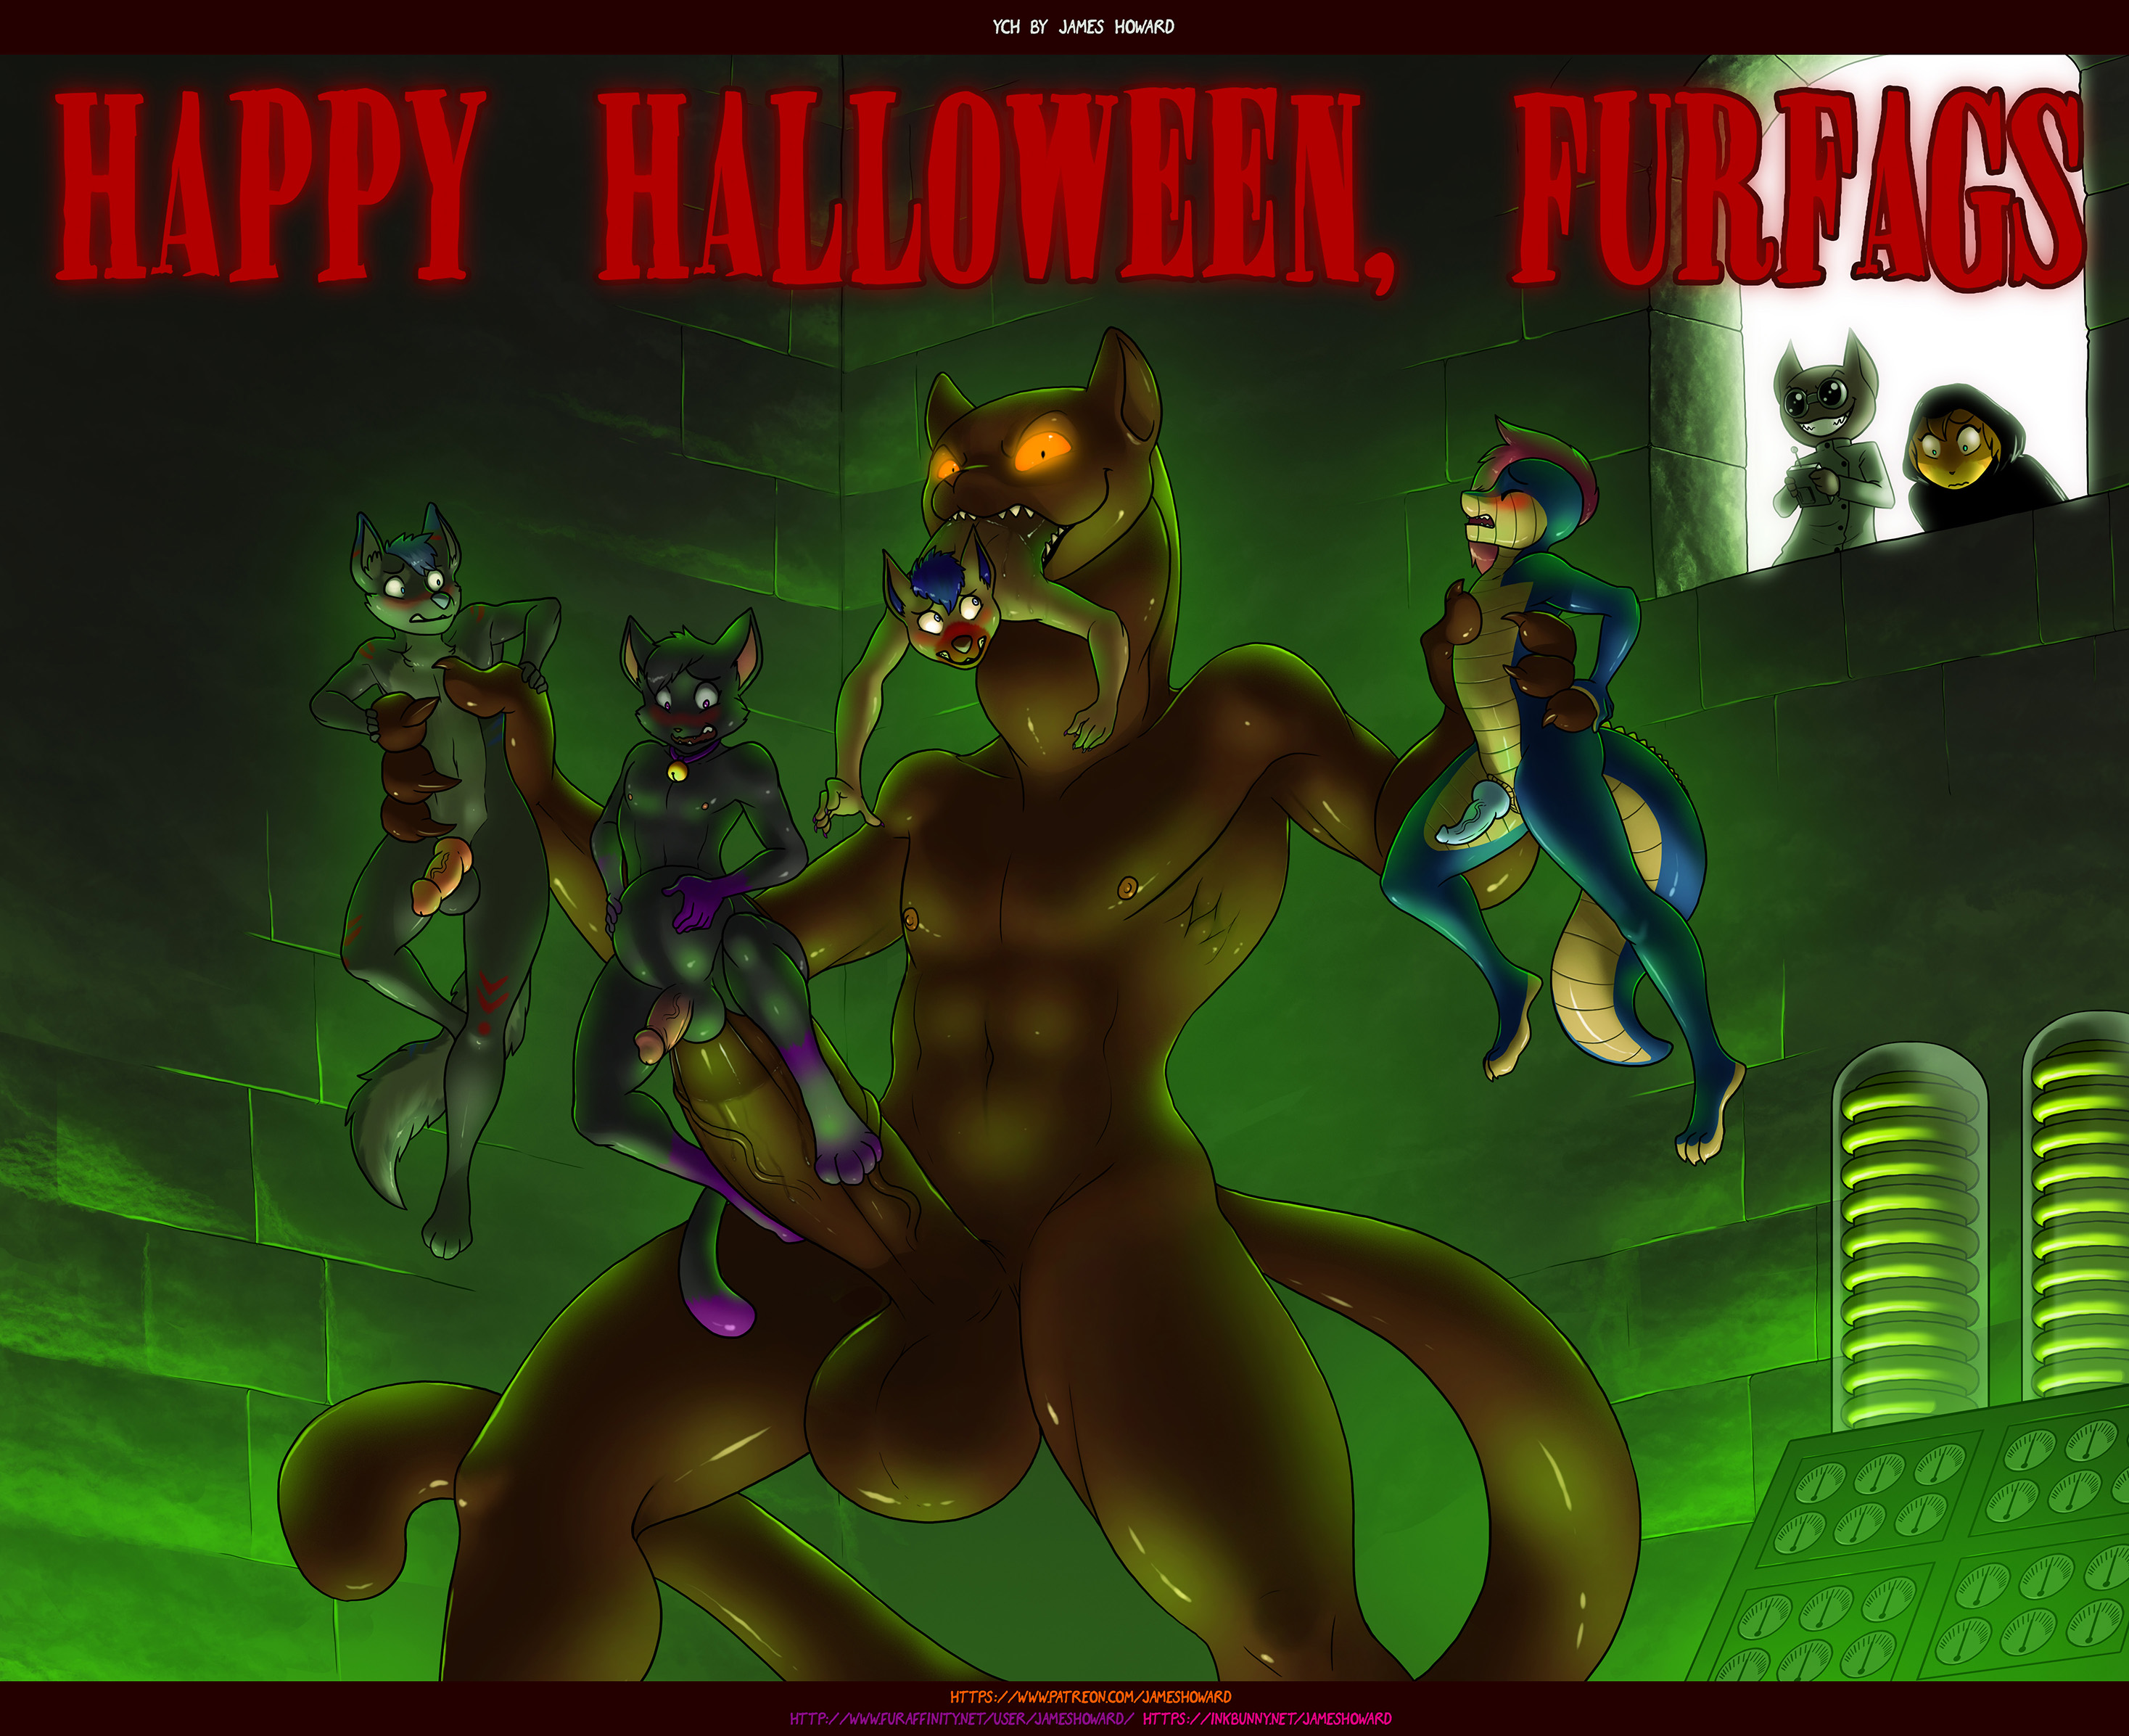 2075702_jameshoward_ych40_halloween_2017-1